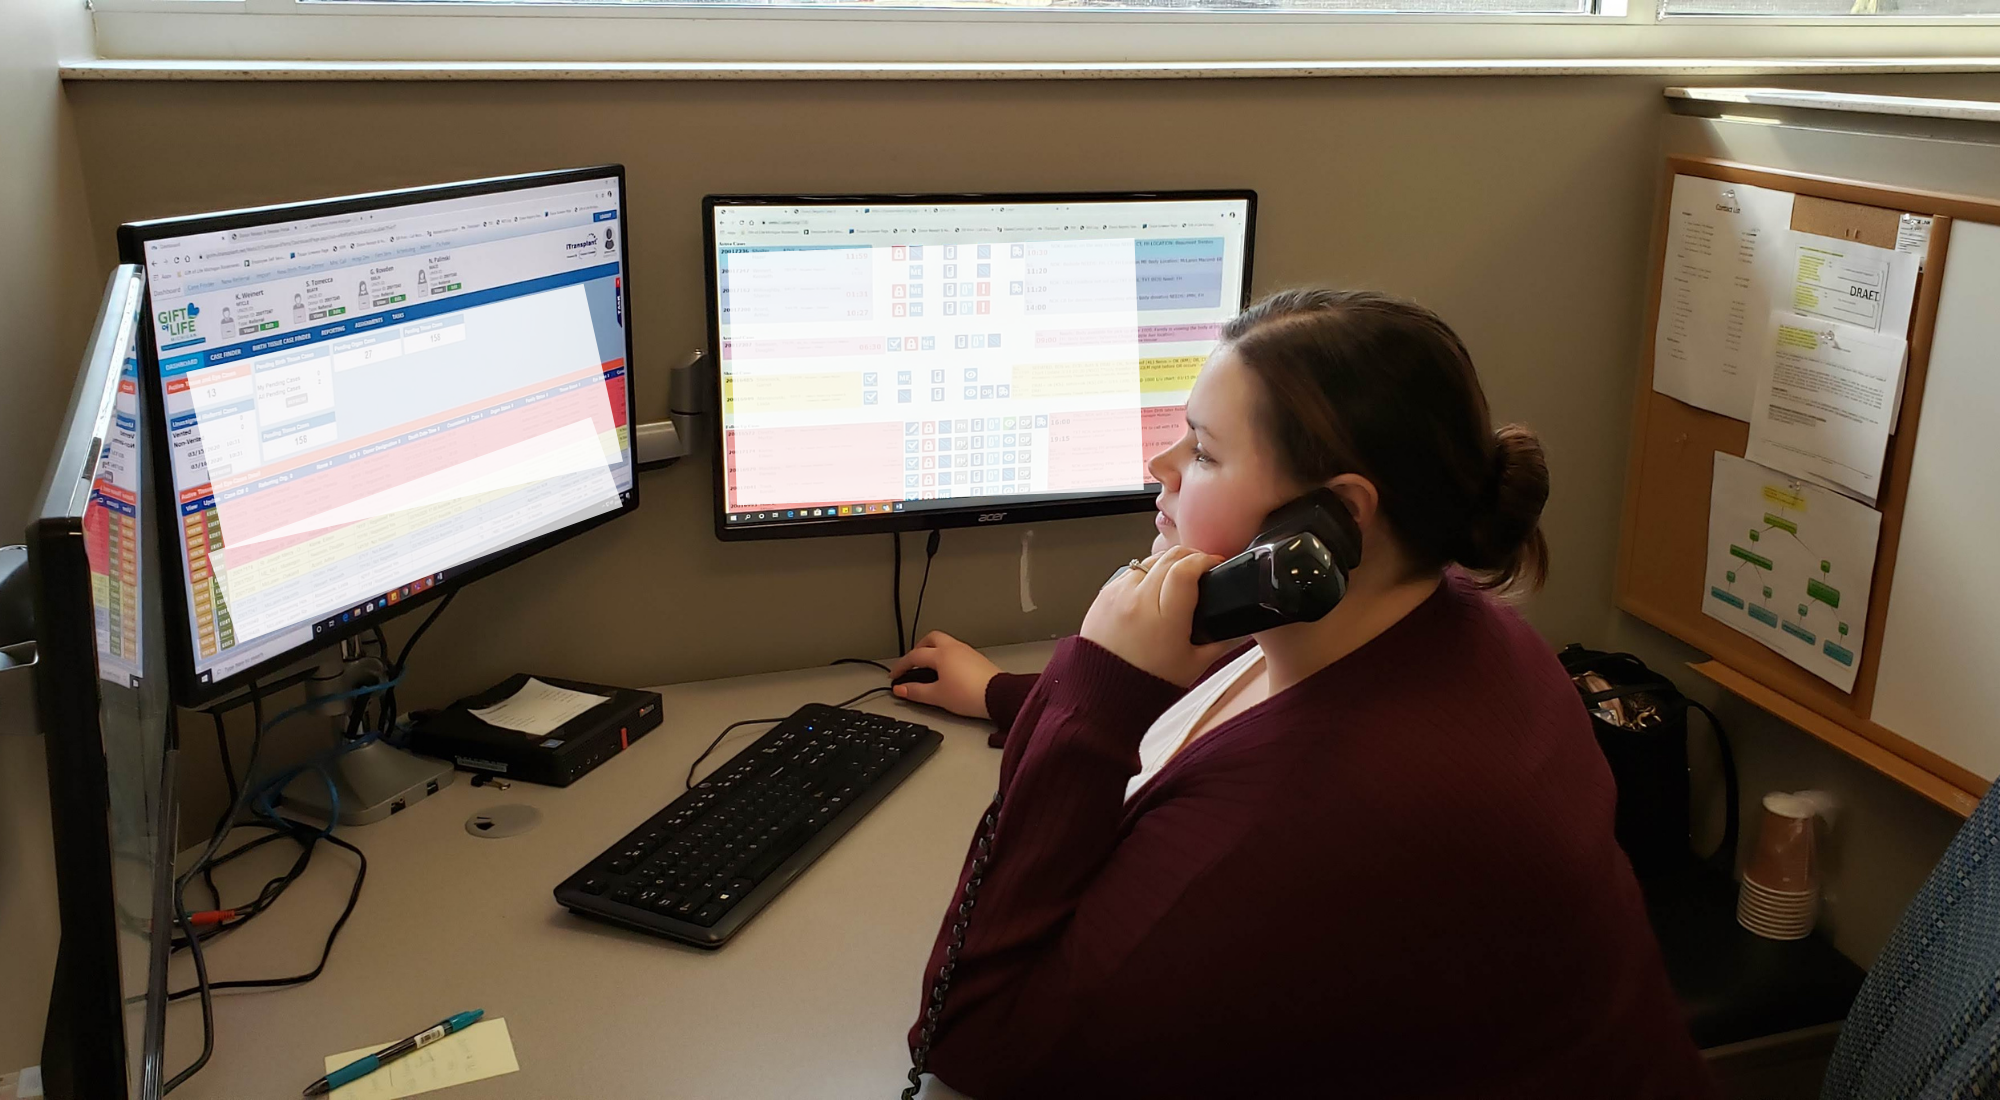 Woman in call center on phone, in front of computer